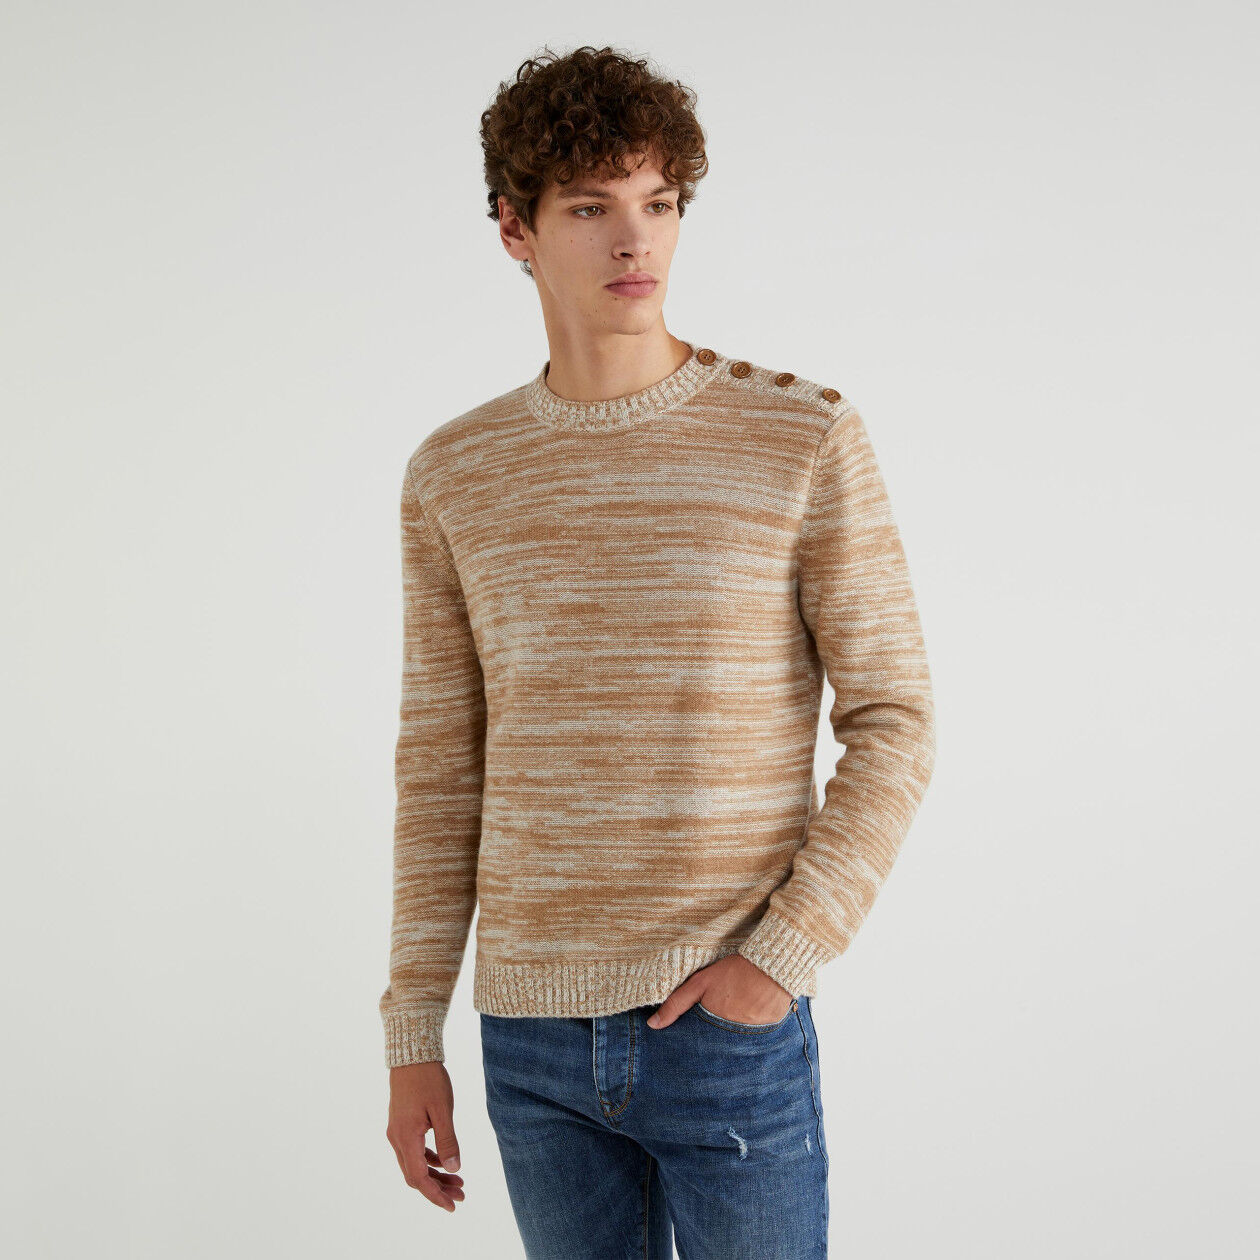 Sweater with buttons